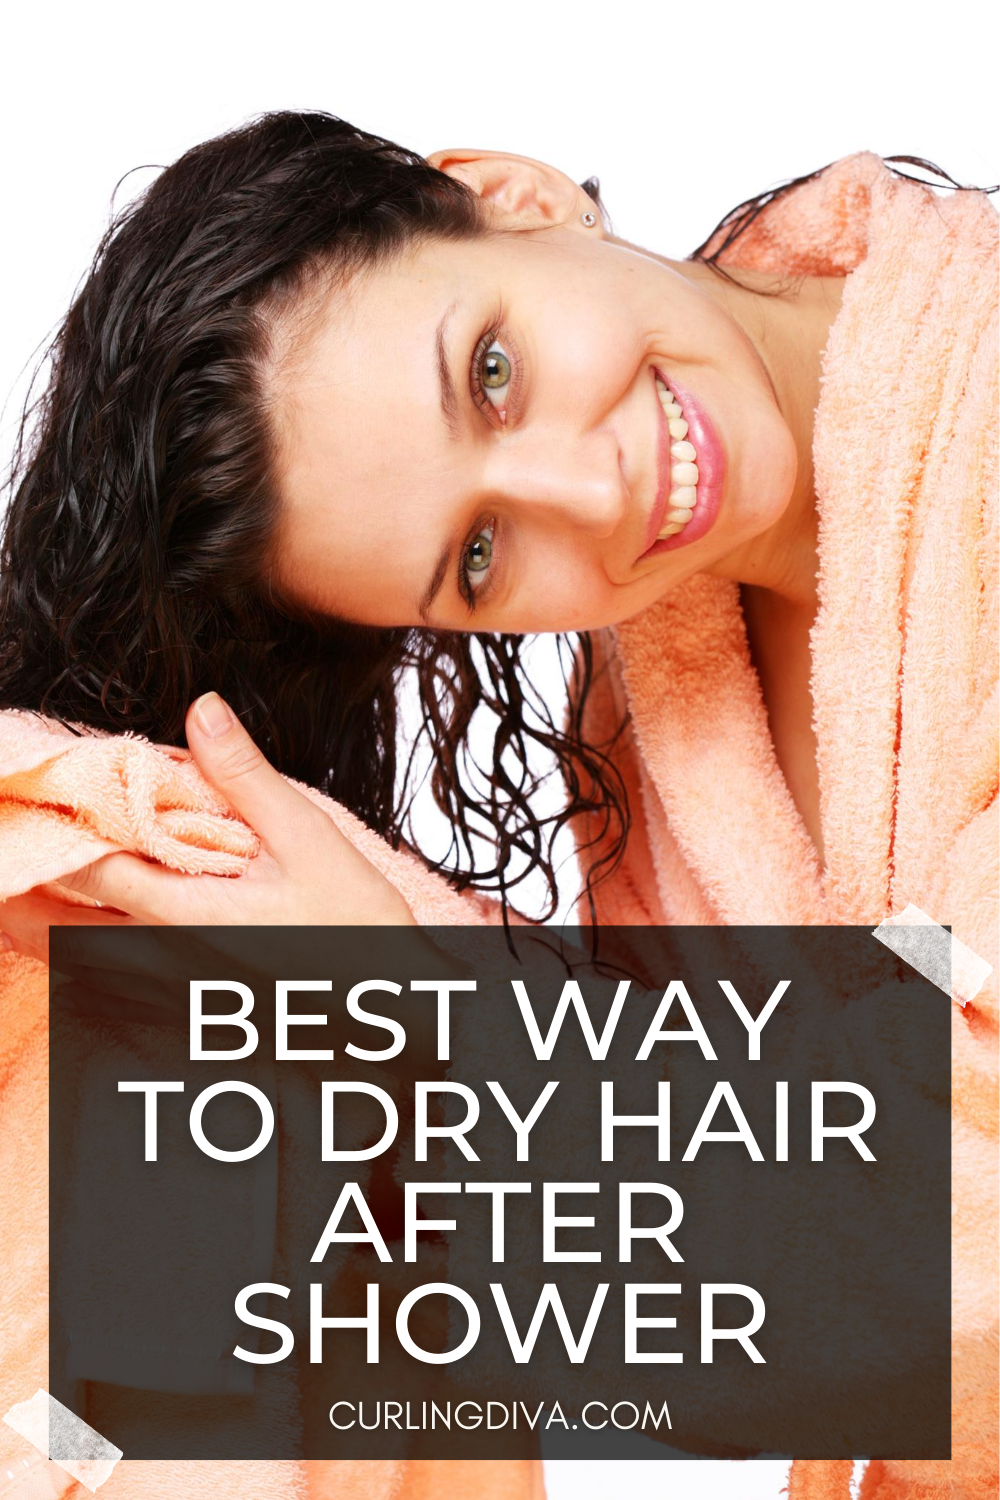 Best Way To Dry Hair After Shower In 2020 Dry Hair Fast Natural Hair Care Tips Dry Hair